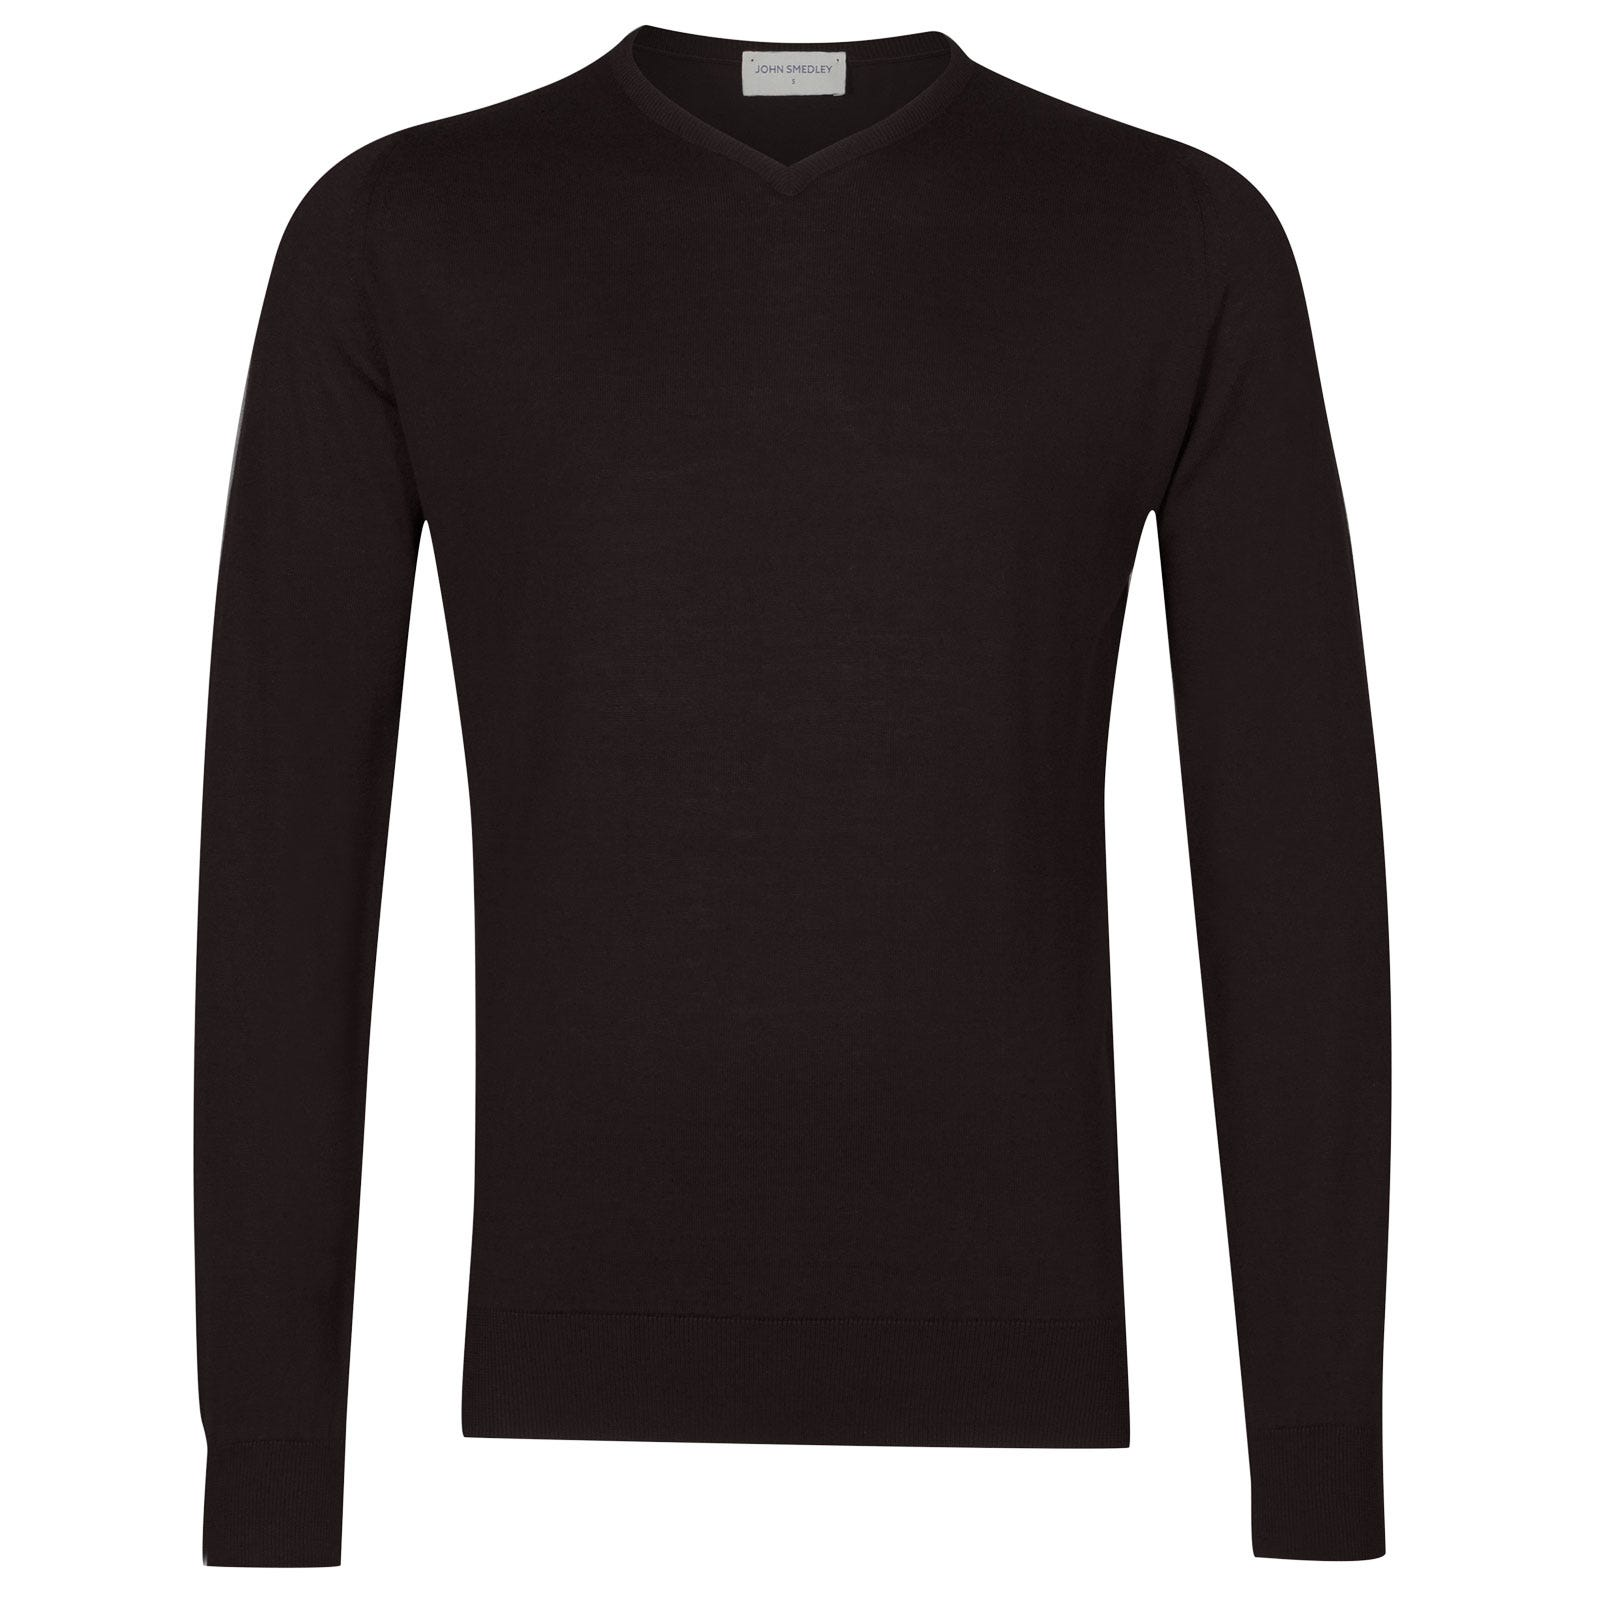 John Smedley Aydon Sea Island Cotton Pullover in Dark Leather-L